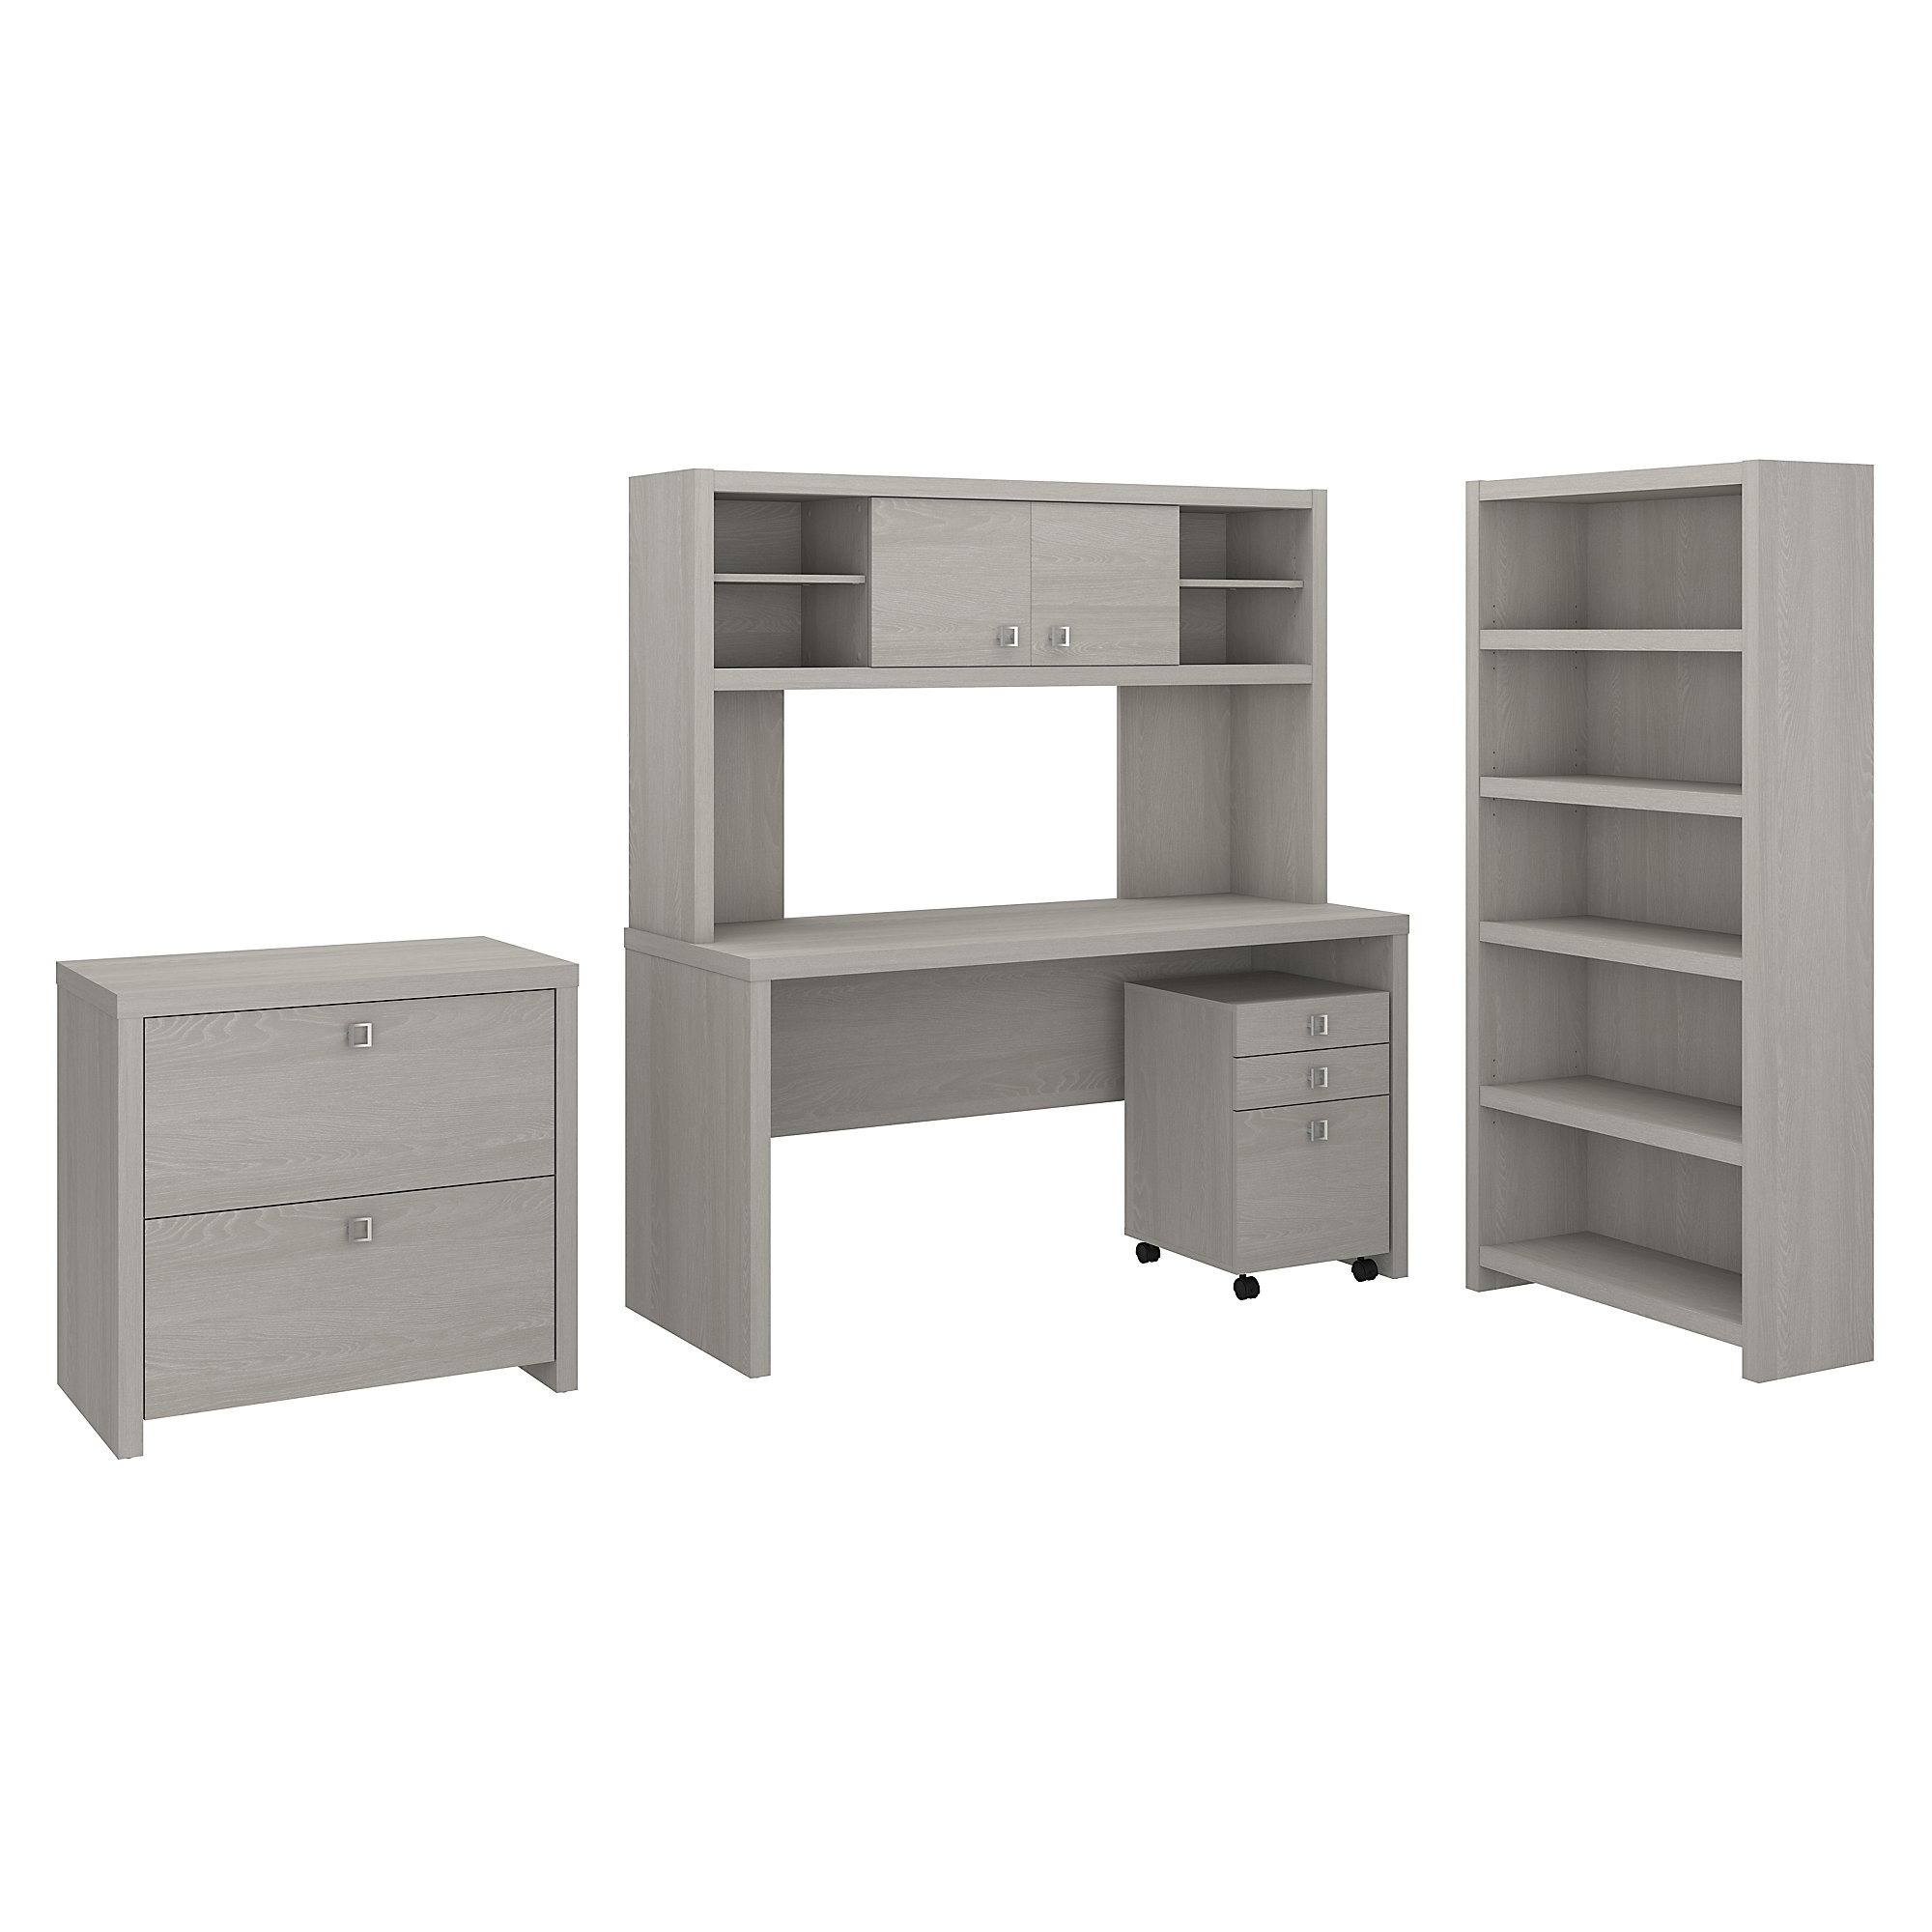 Office By Kathy Ireland Echo Desk With Hutch Bookcase And File Cabinets In Gray Sand